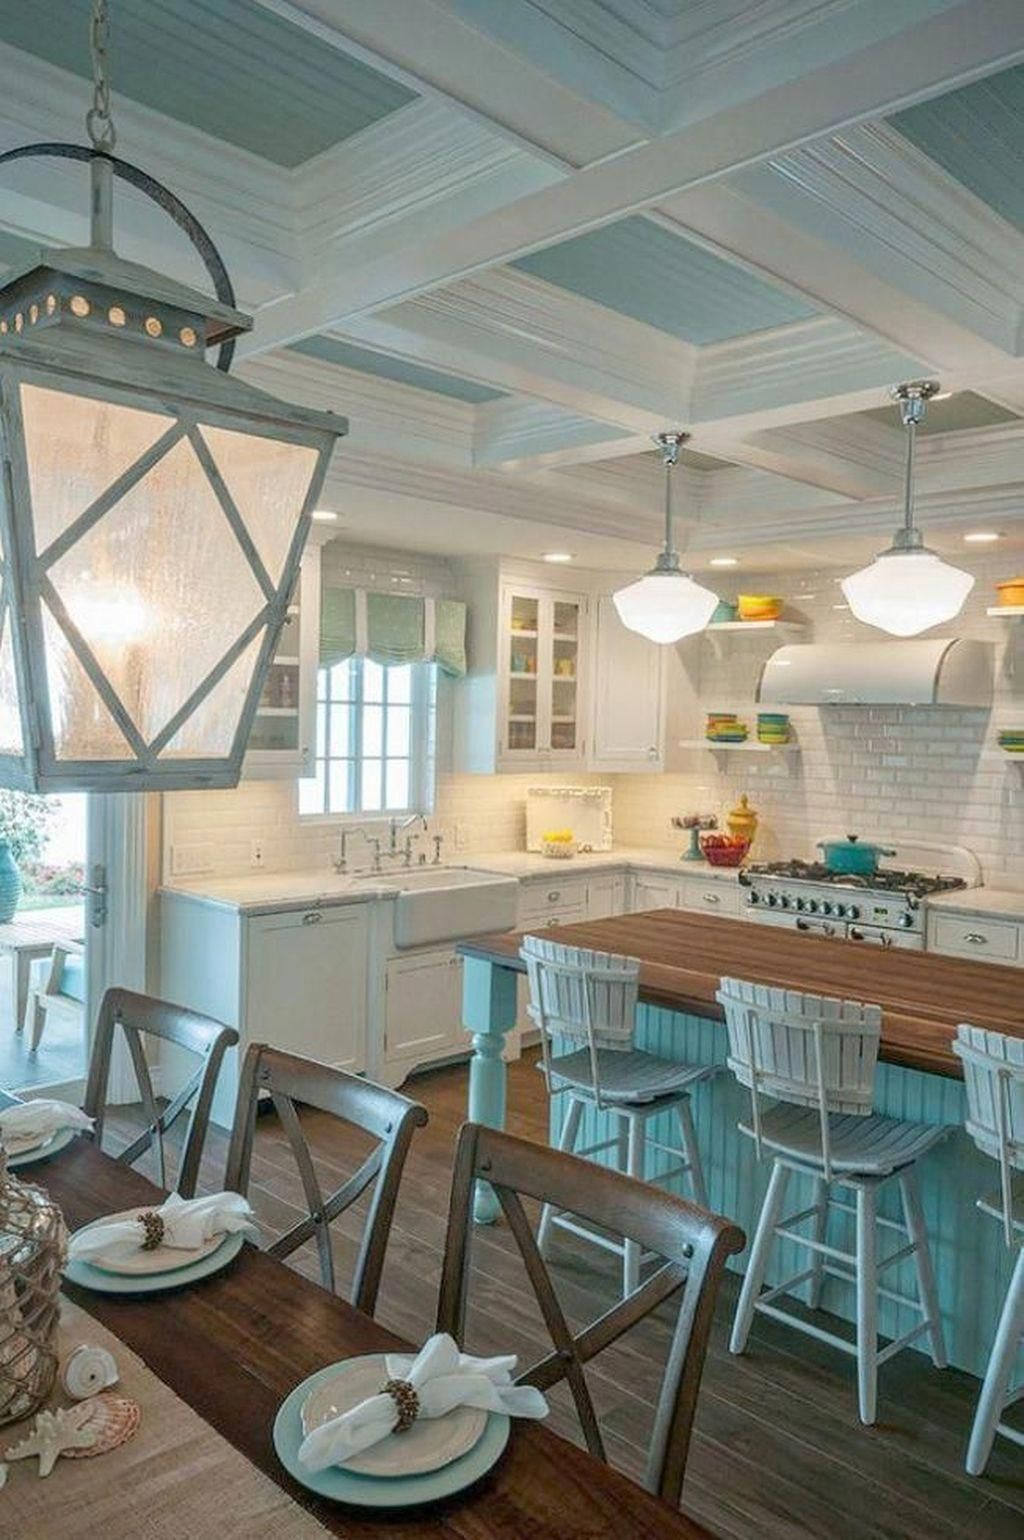 Nautical And Coastal Decor Style Gives A Relaxed Feeling Not Only To The Guests But Also To The Beach House Kitchens Beach House Interior Beach Cottage Decor